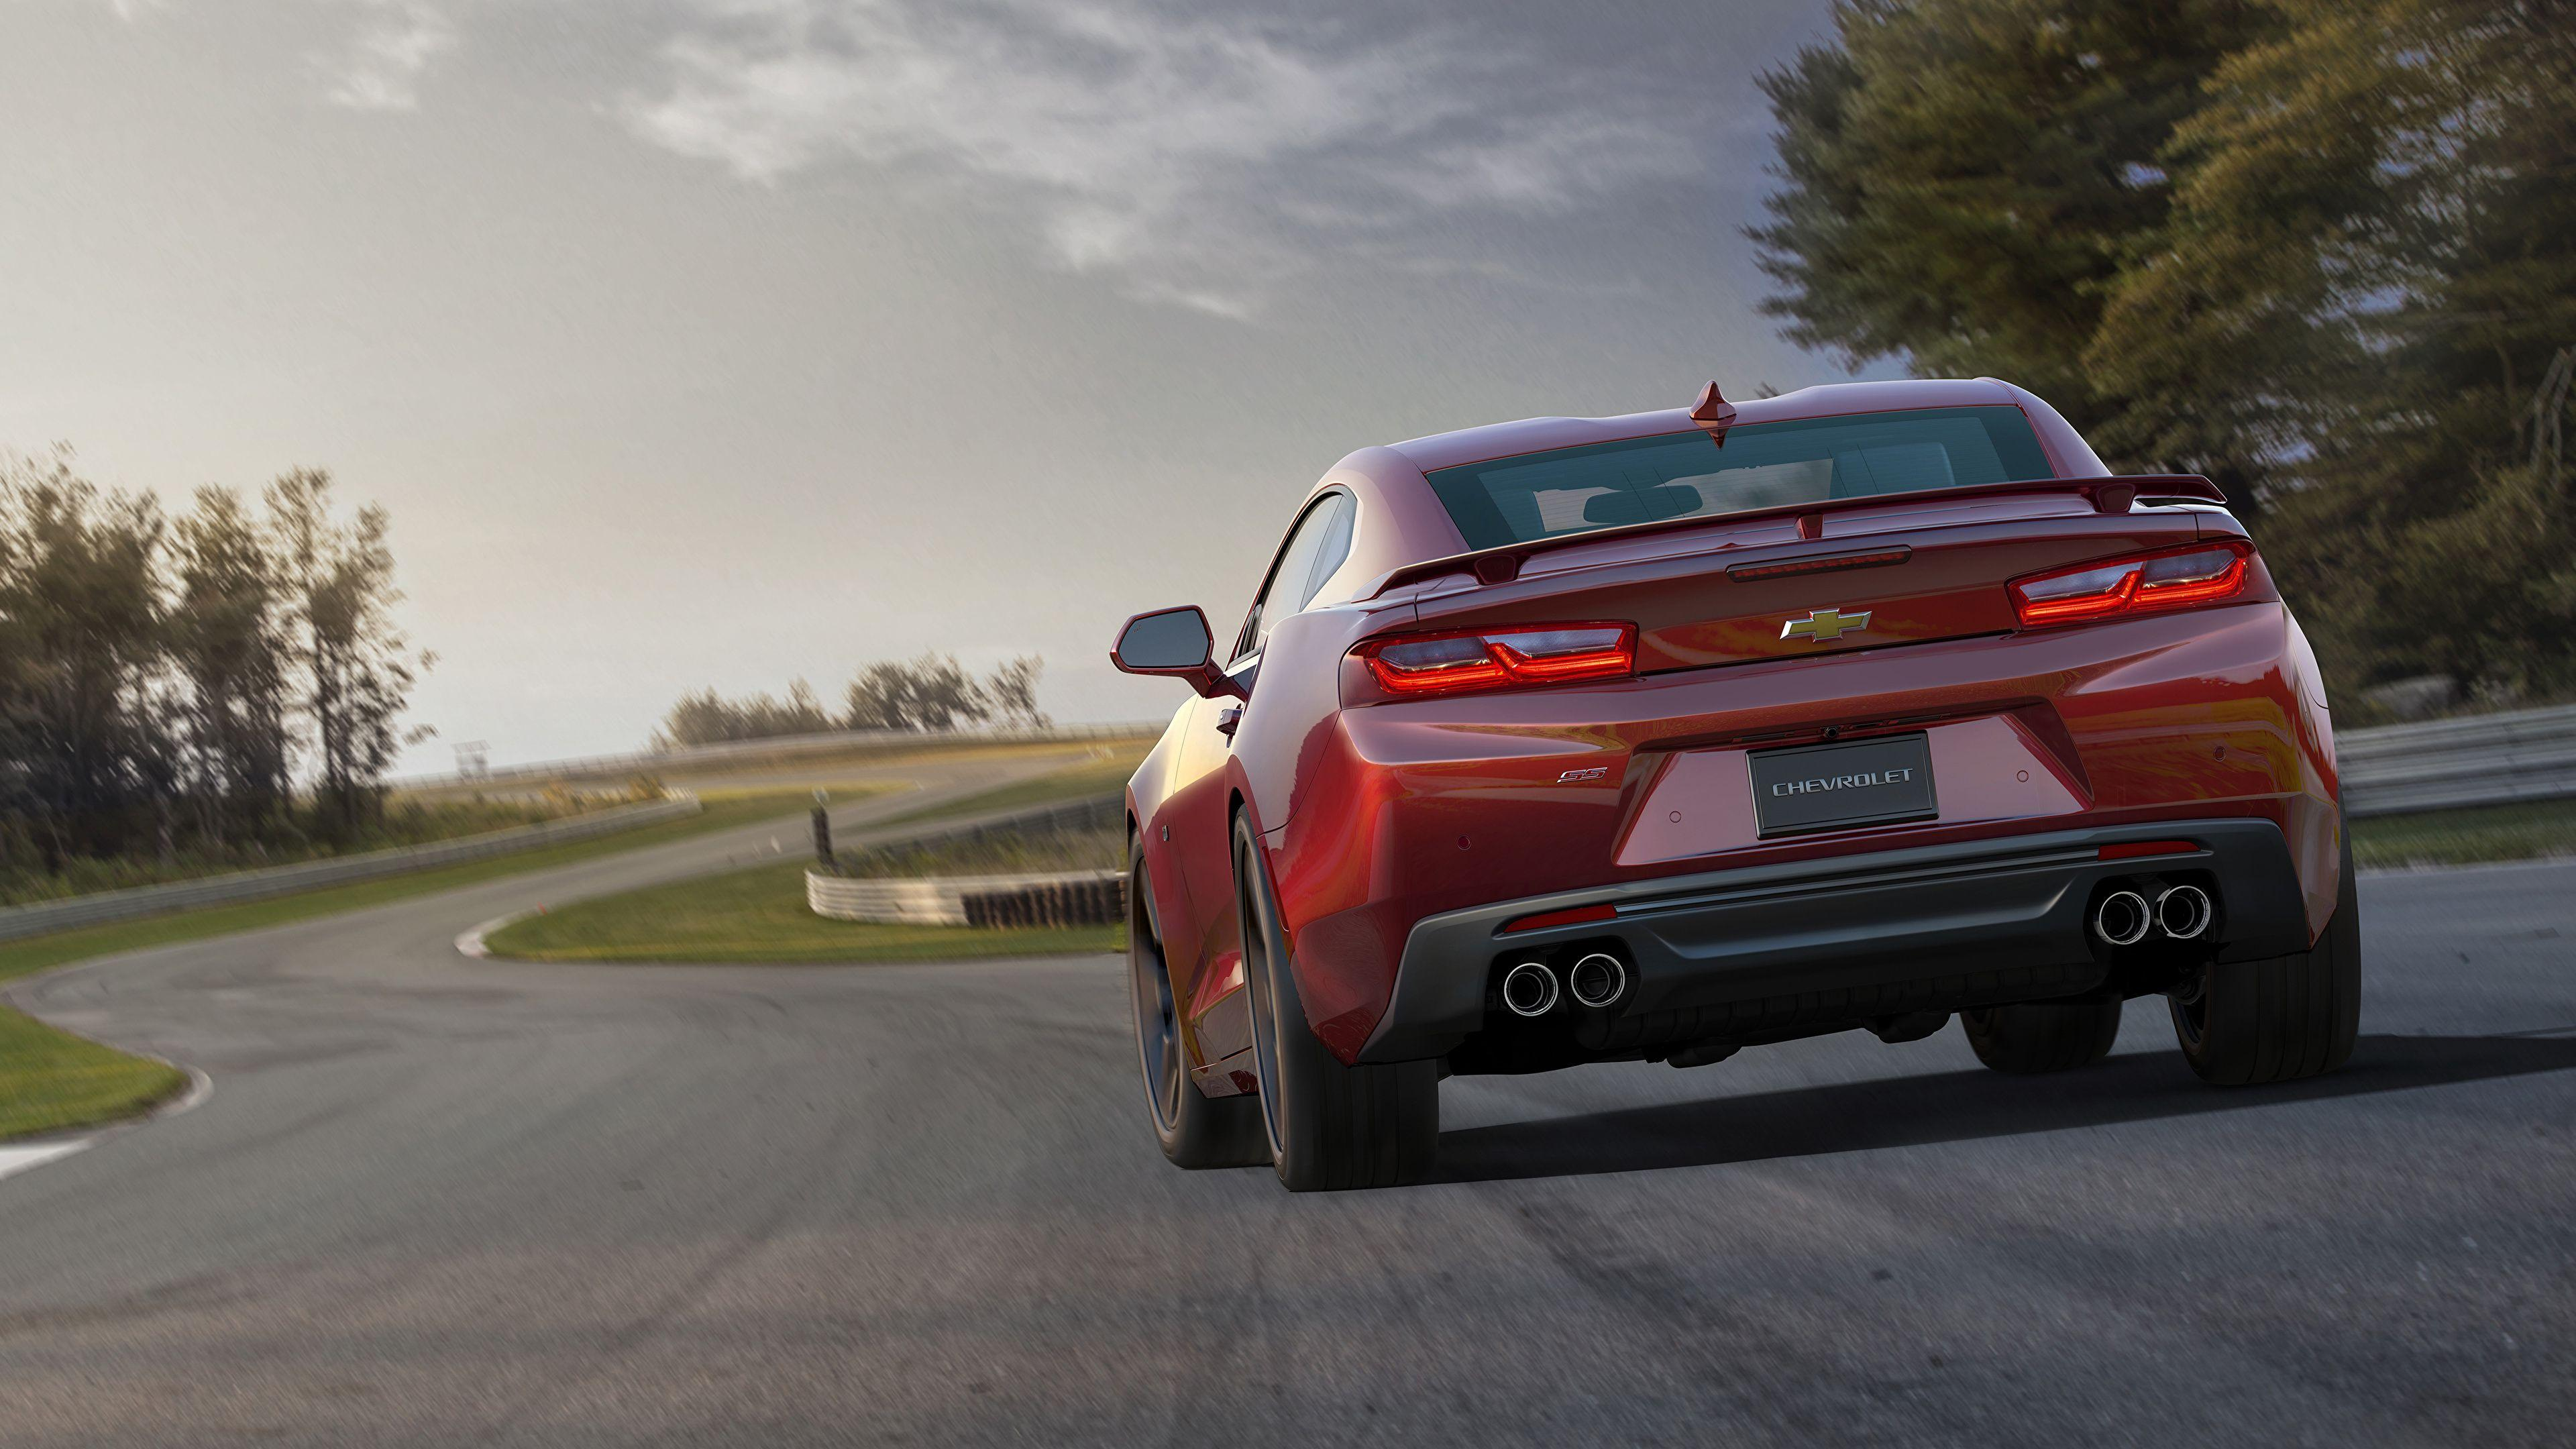 Wallpapers Chevrolet 2015 Camaro SS Red Roads Cars Back 3840x2160